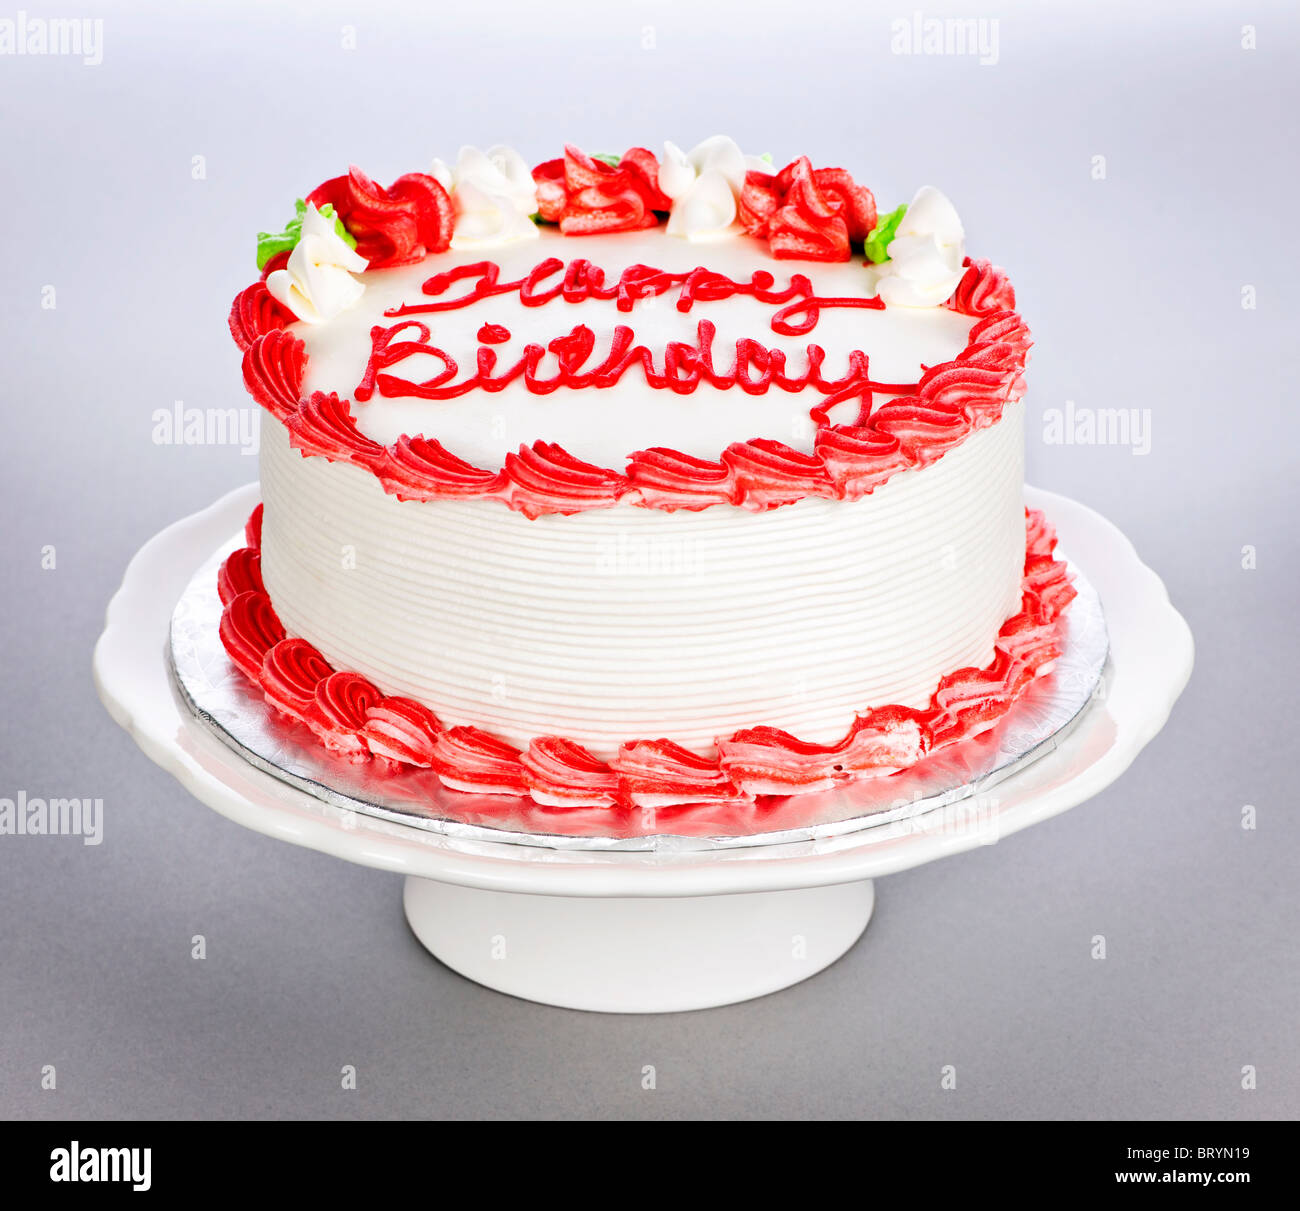 Sensational Birthday Cake With White And Red Icing On Plate Stock Photo Funny Birthday Cards Online Elaedamsfinfo